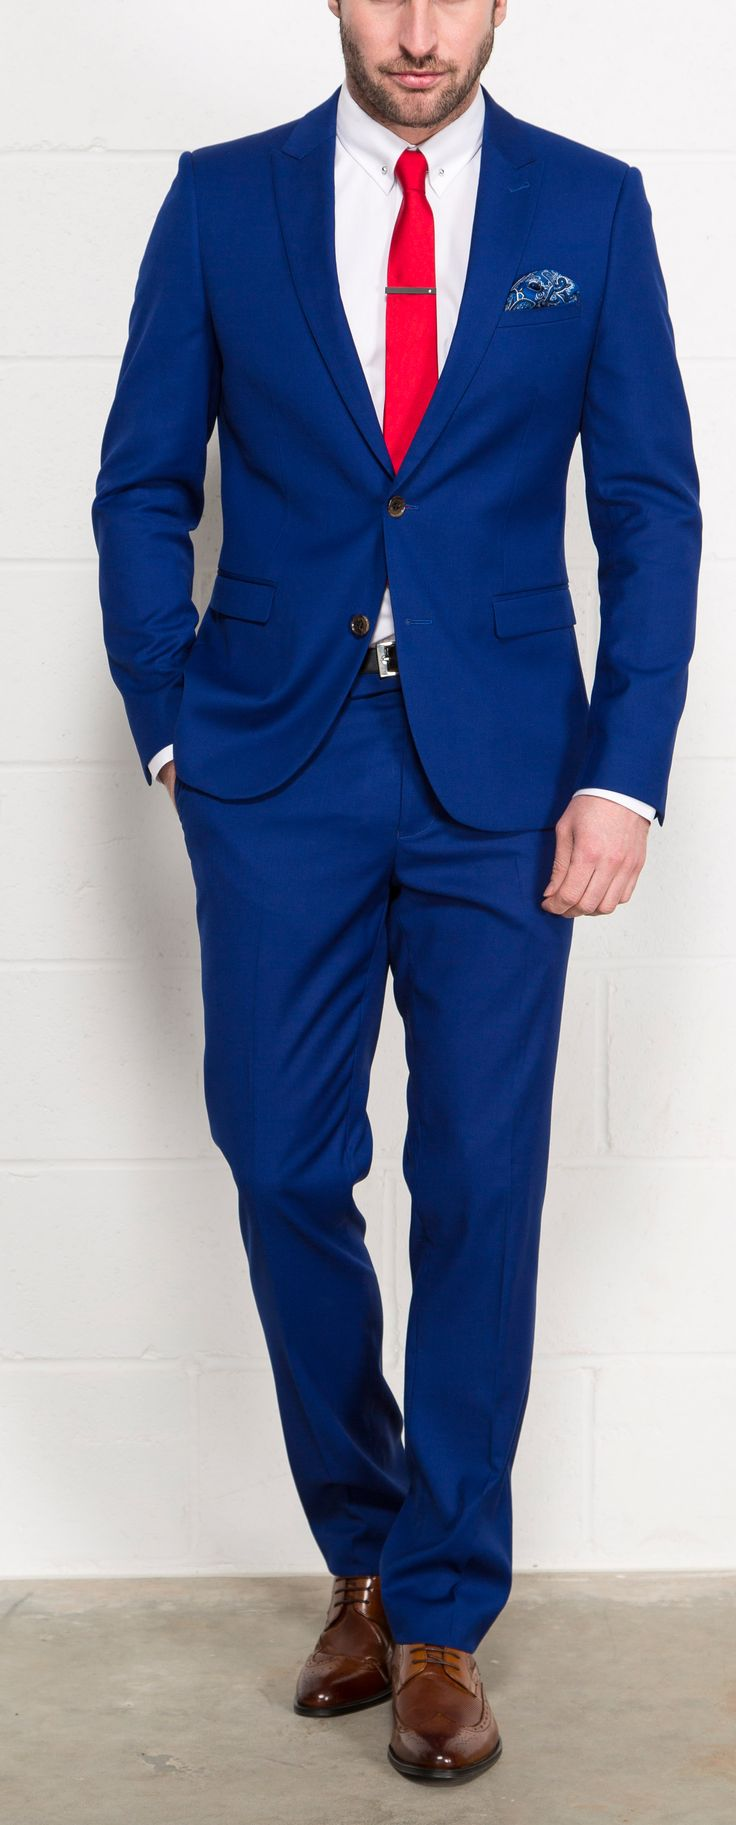 40 best images about It's all about the Suit on Pinterest | Skinny ...